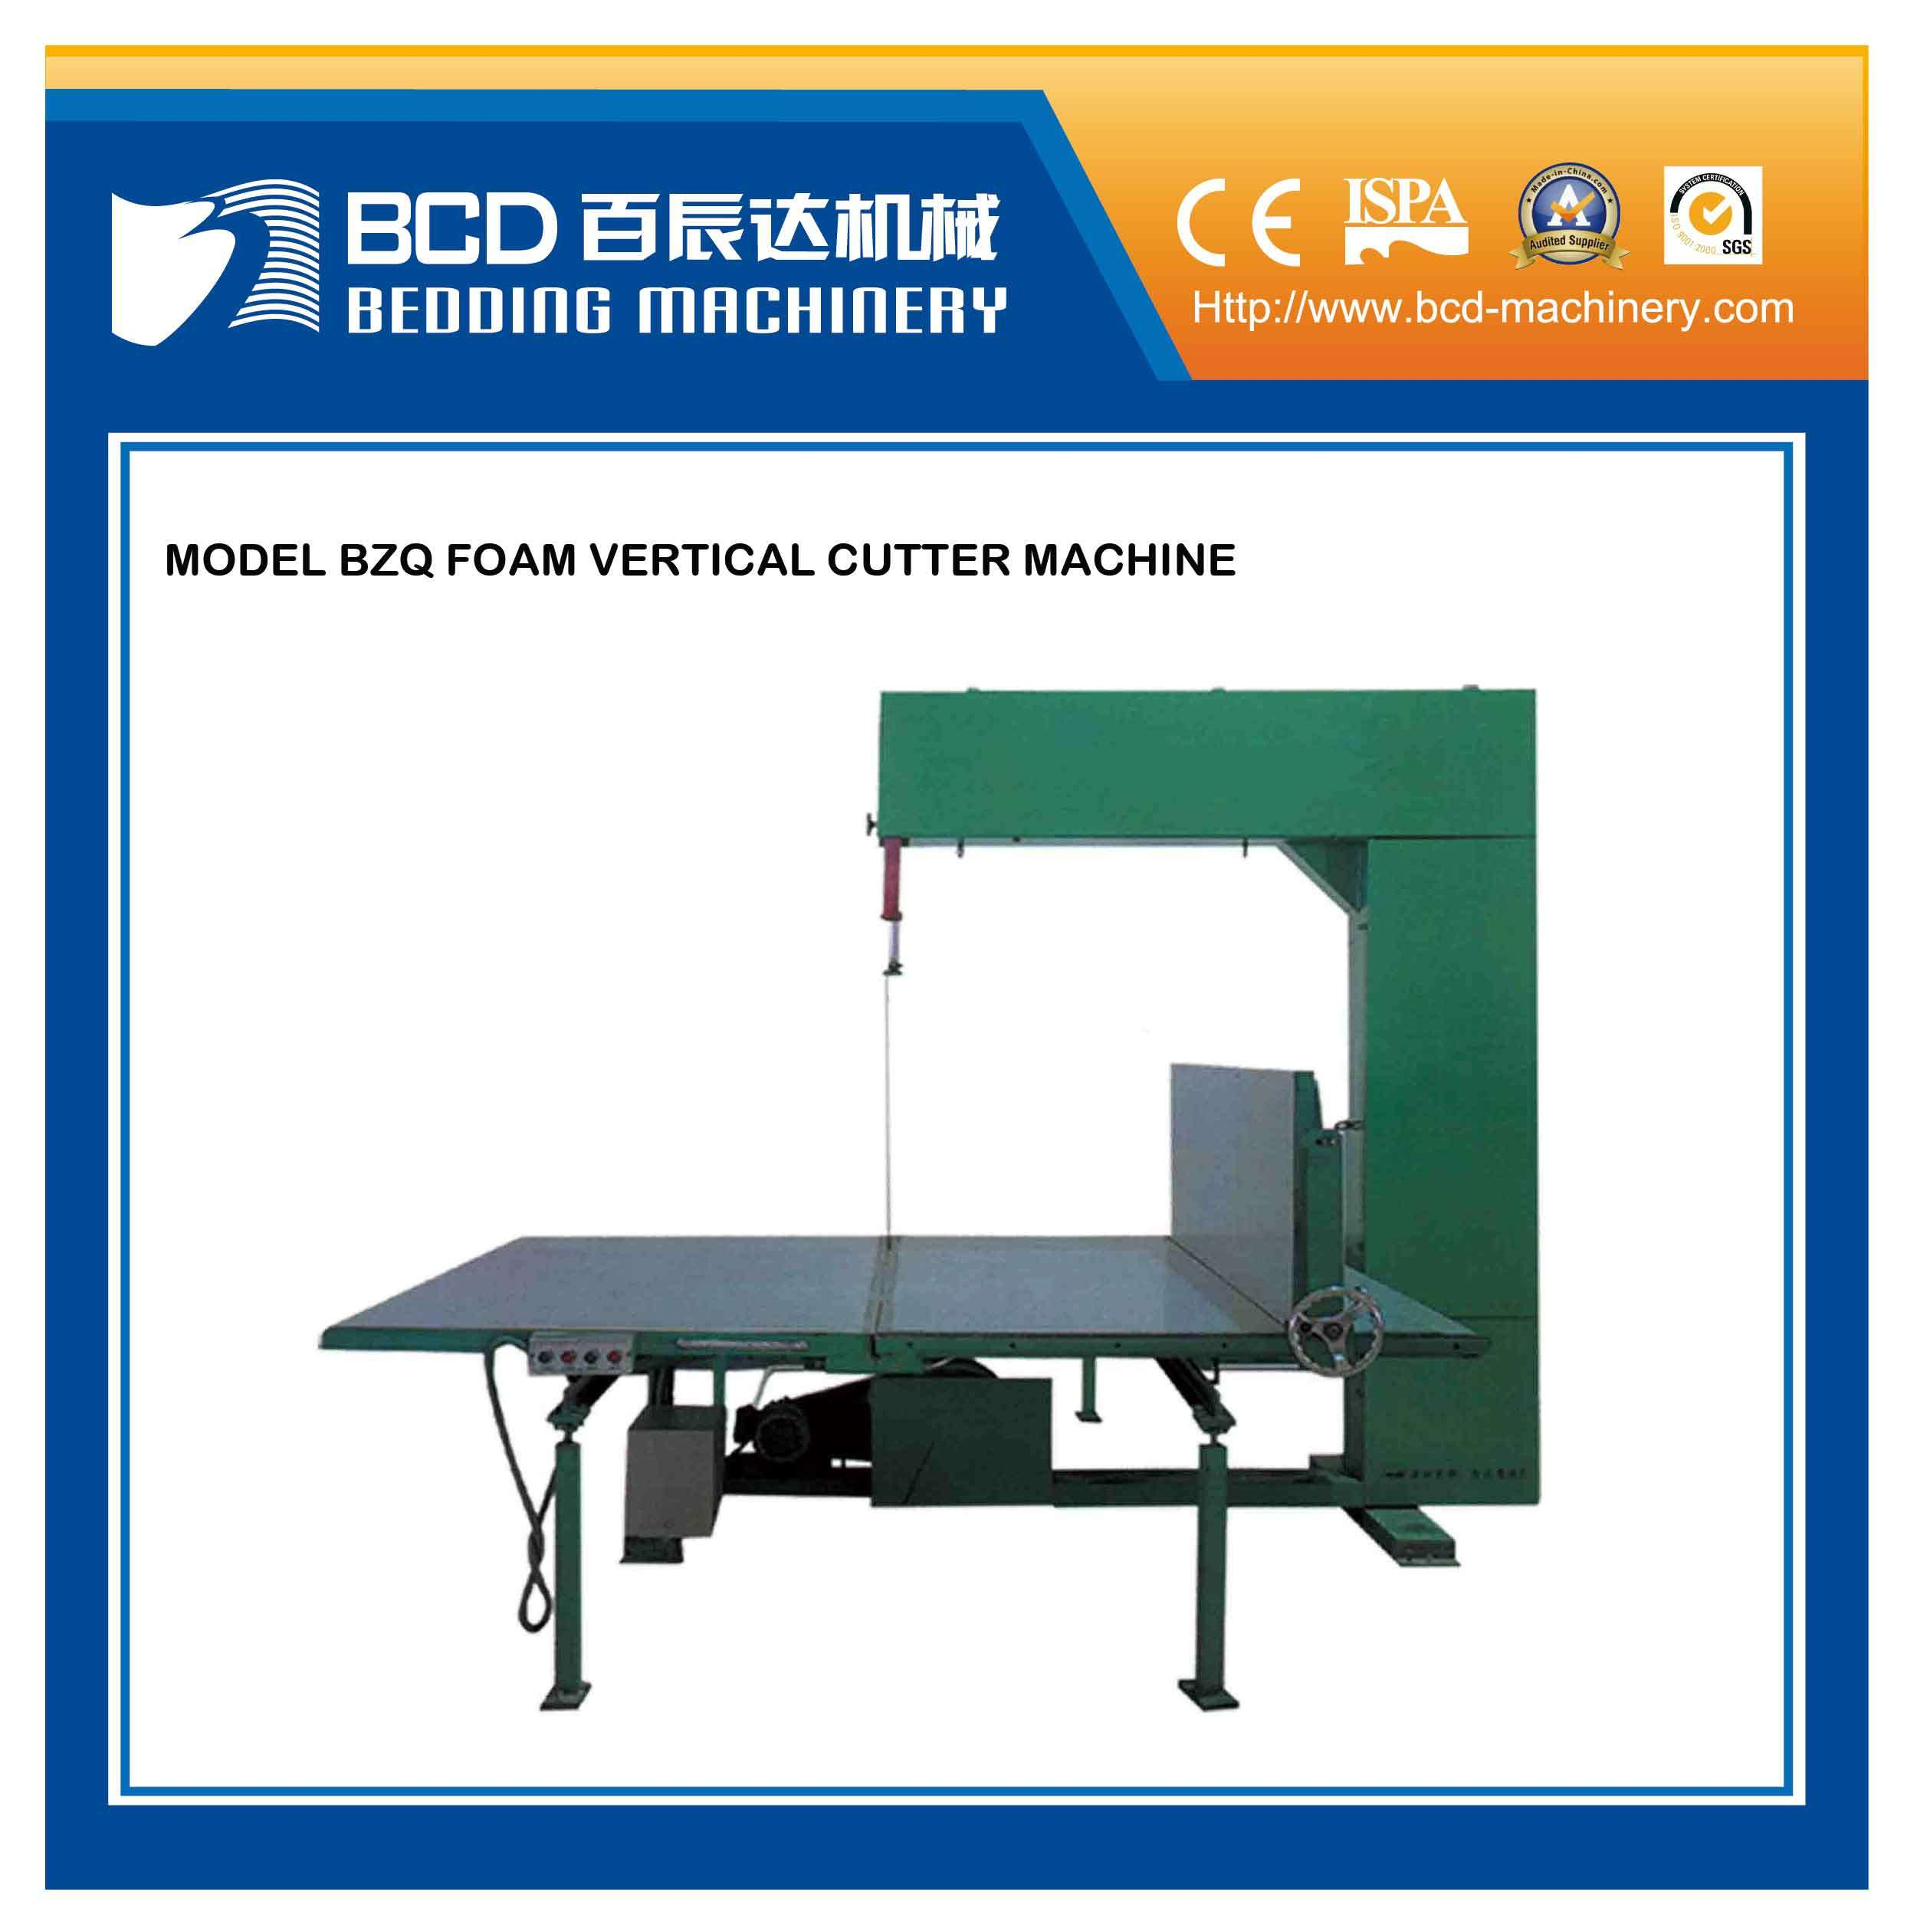 China Foam Vertical Cutting Machine Bzq Photos